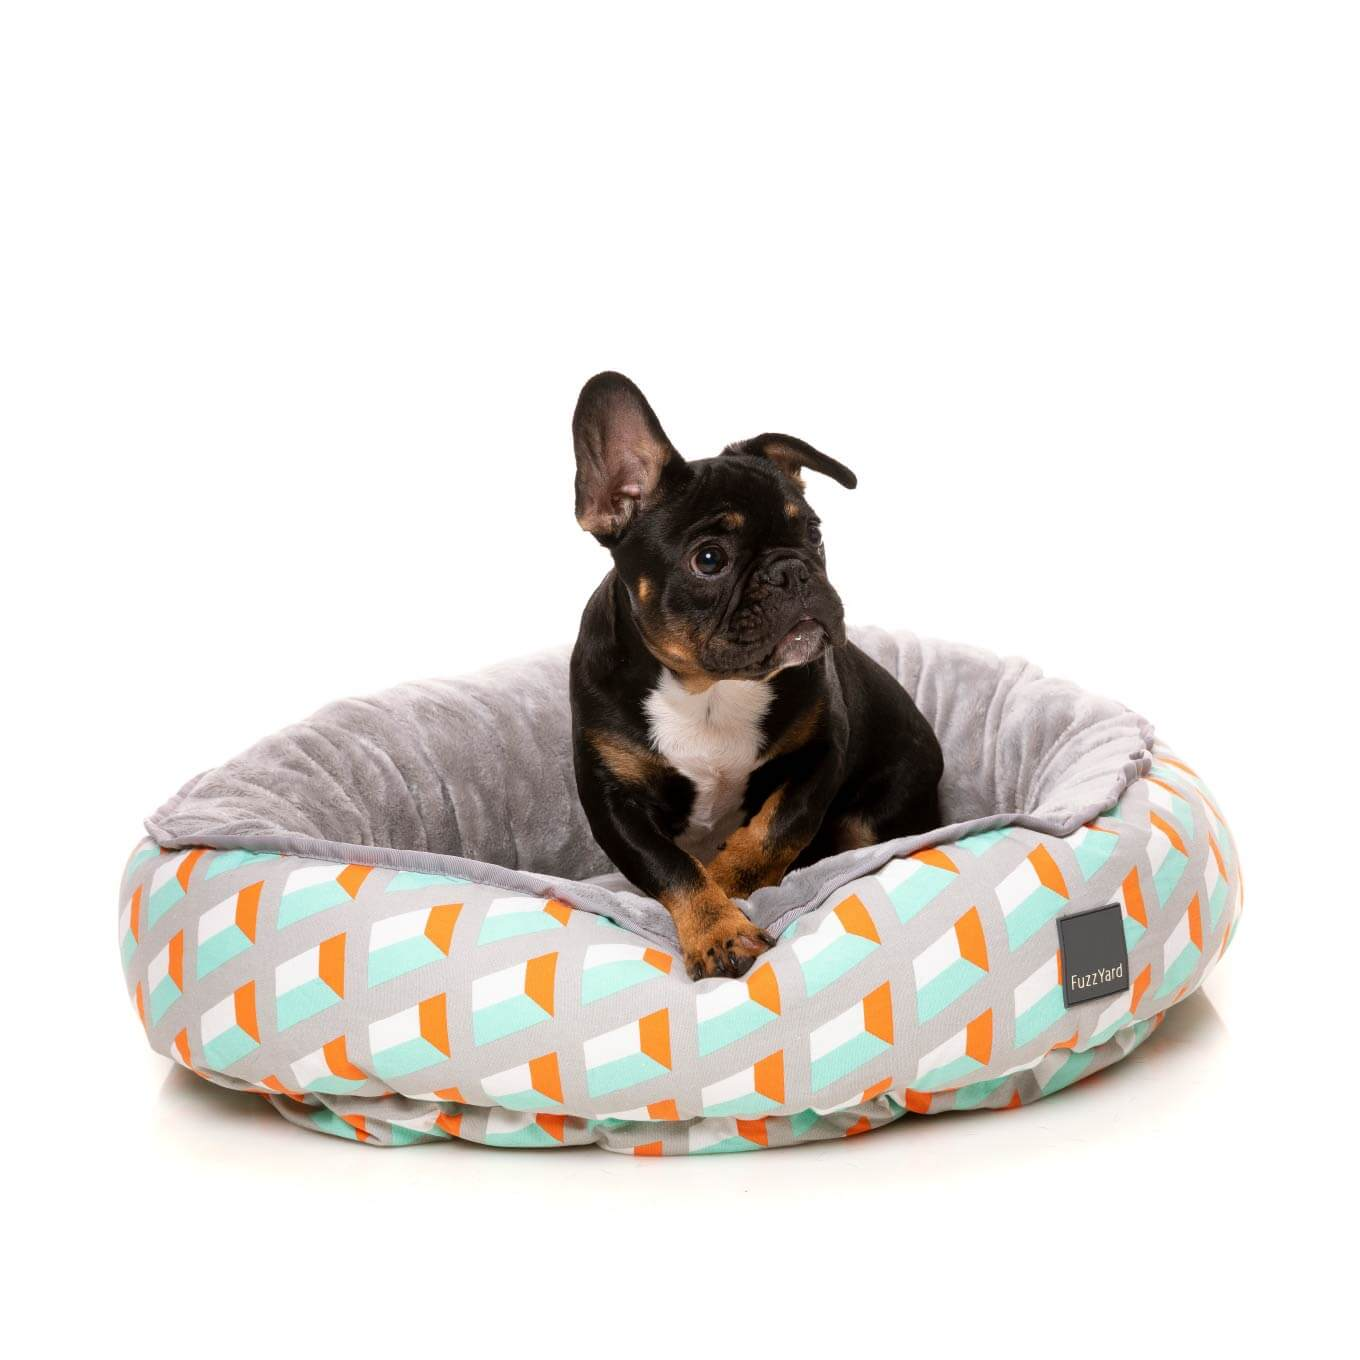 FuzzYard San Antonio Reversible Pet Bed